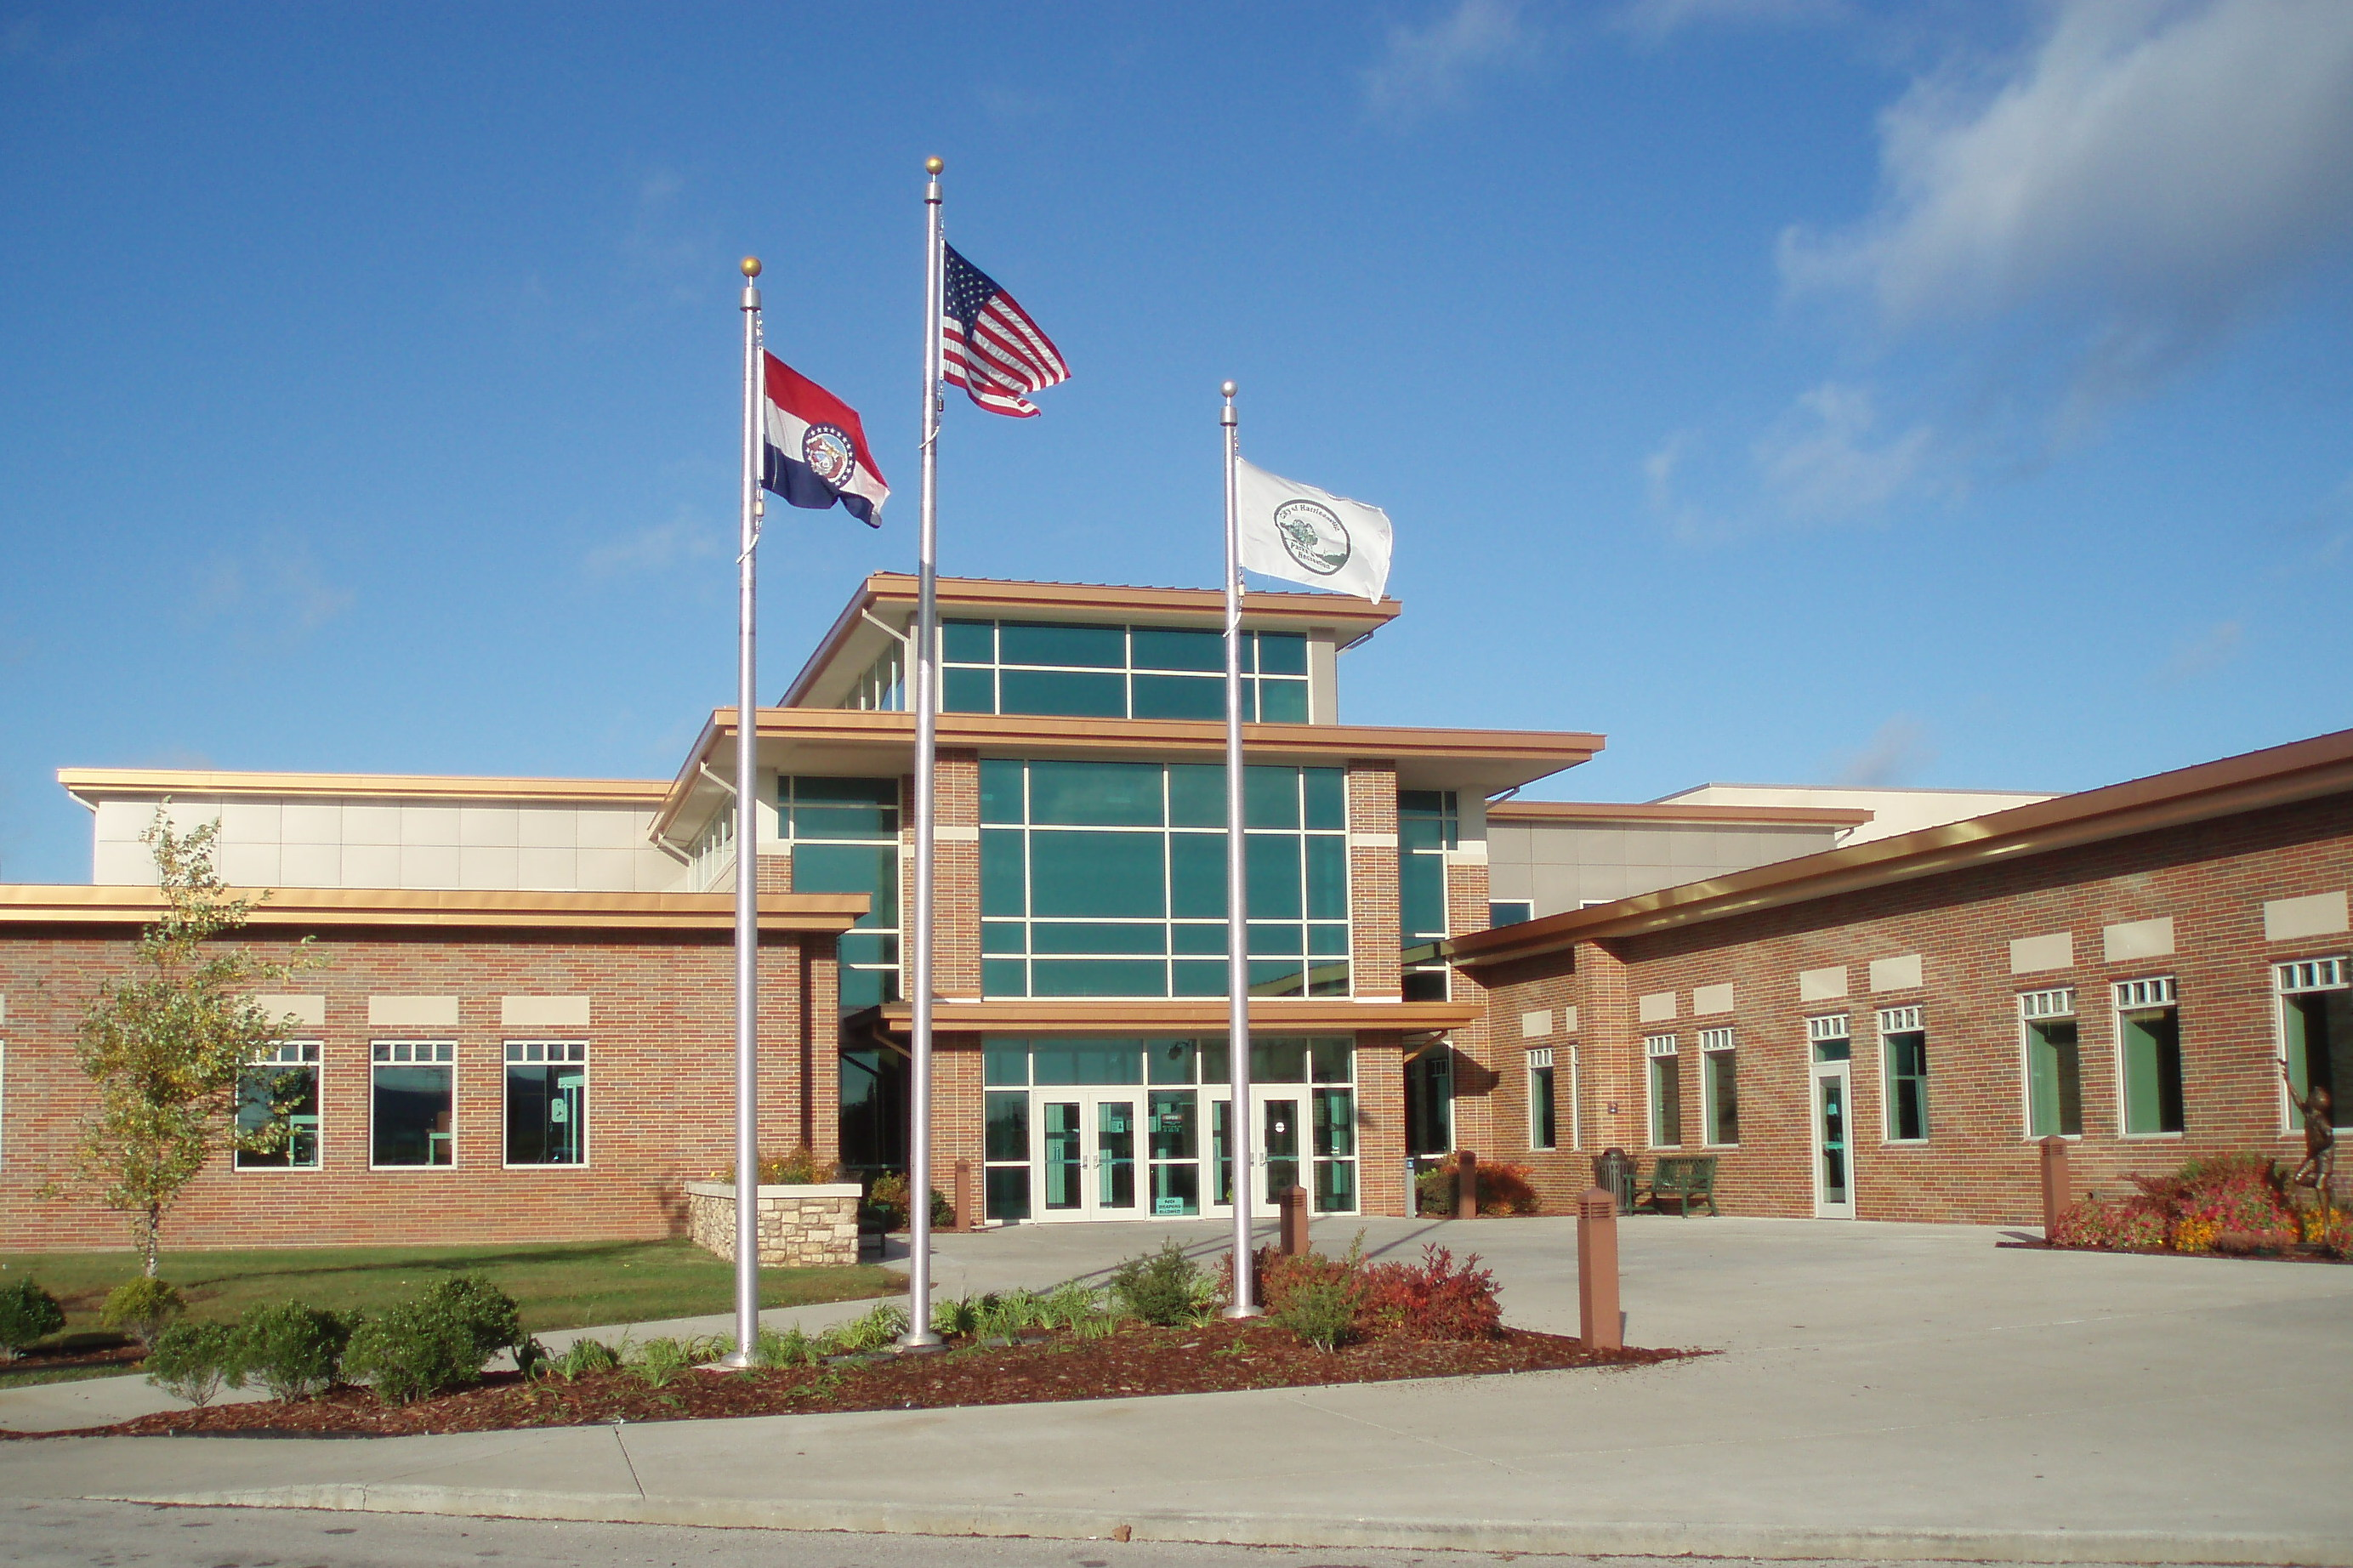 Harrison Community Cente Exterior and Flags